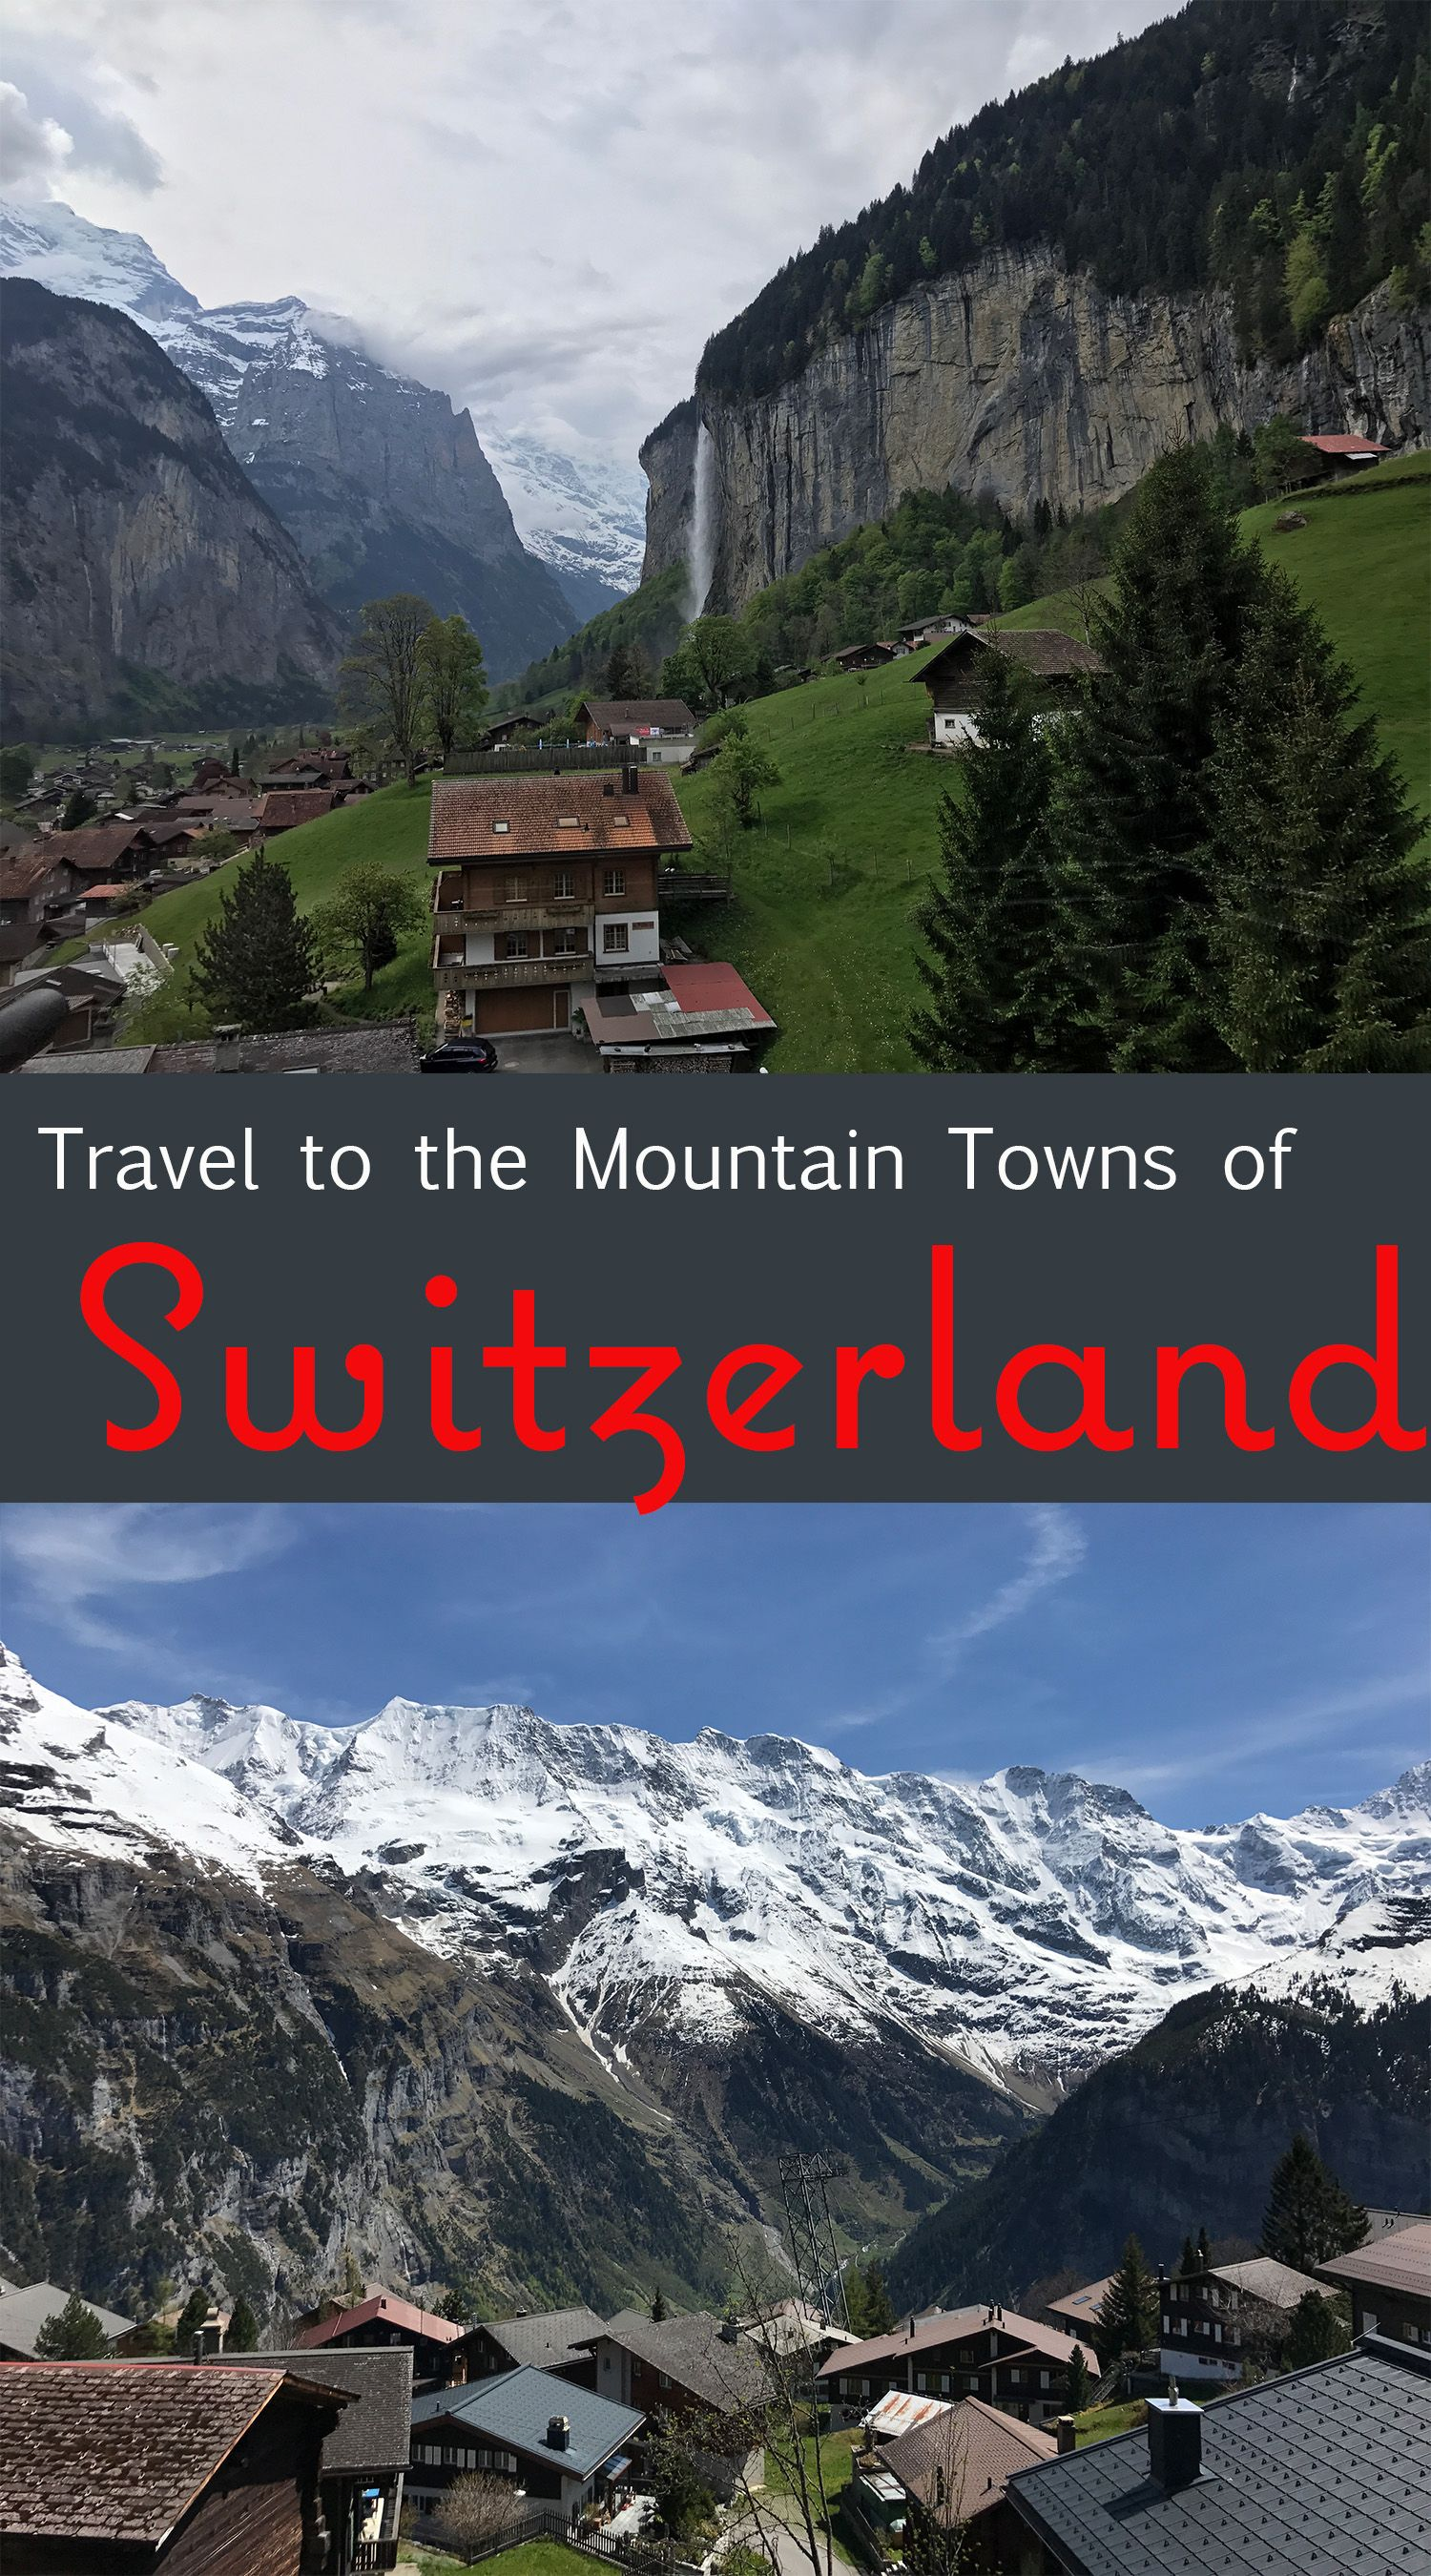 Find Out How To Get To The Gorgeous, Secluded Mountain